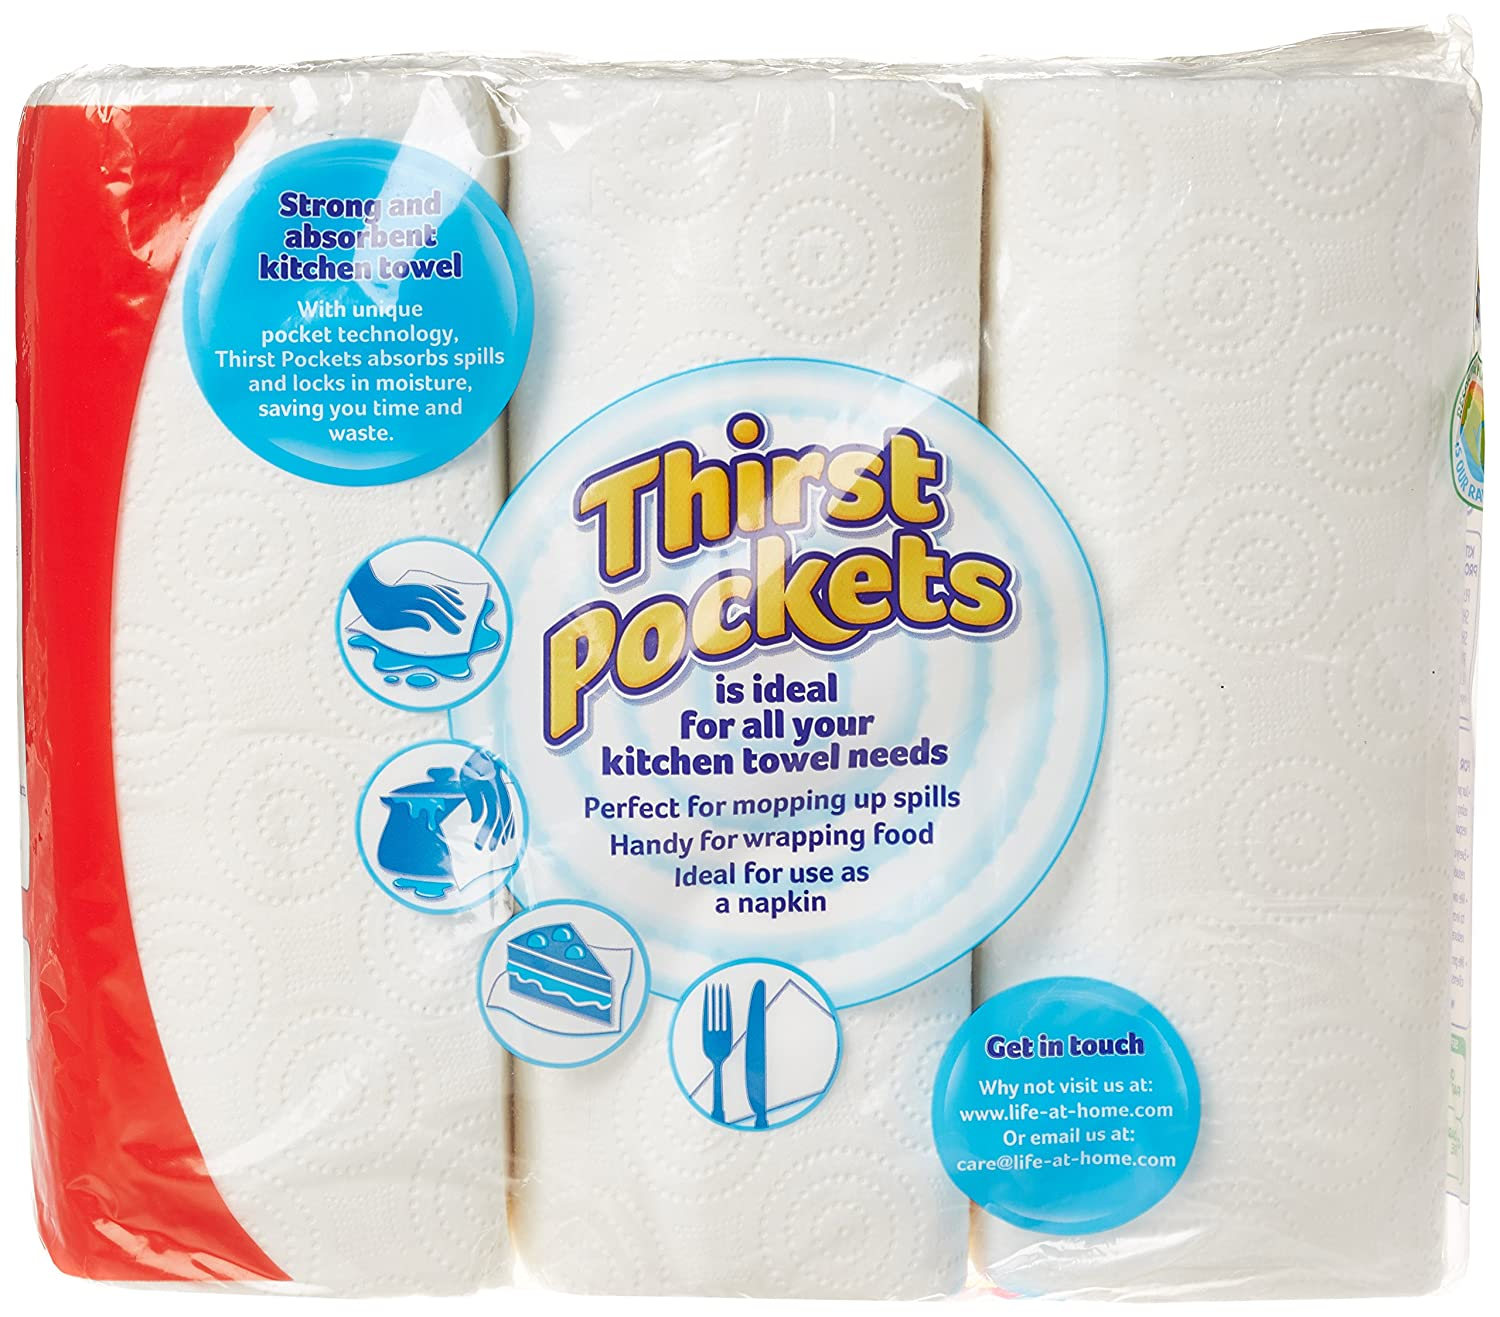 Thirst Pockets Kitchen Towel 3 for 2 Rolls (Pack of 8): Amazon.co.uk ...